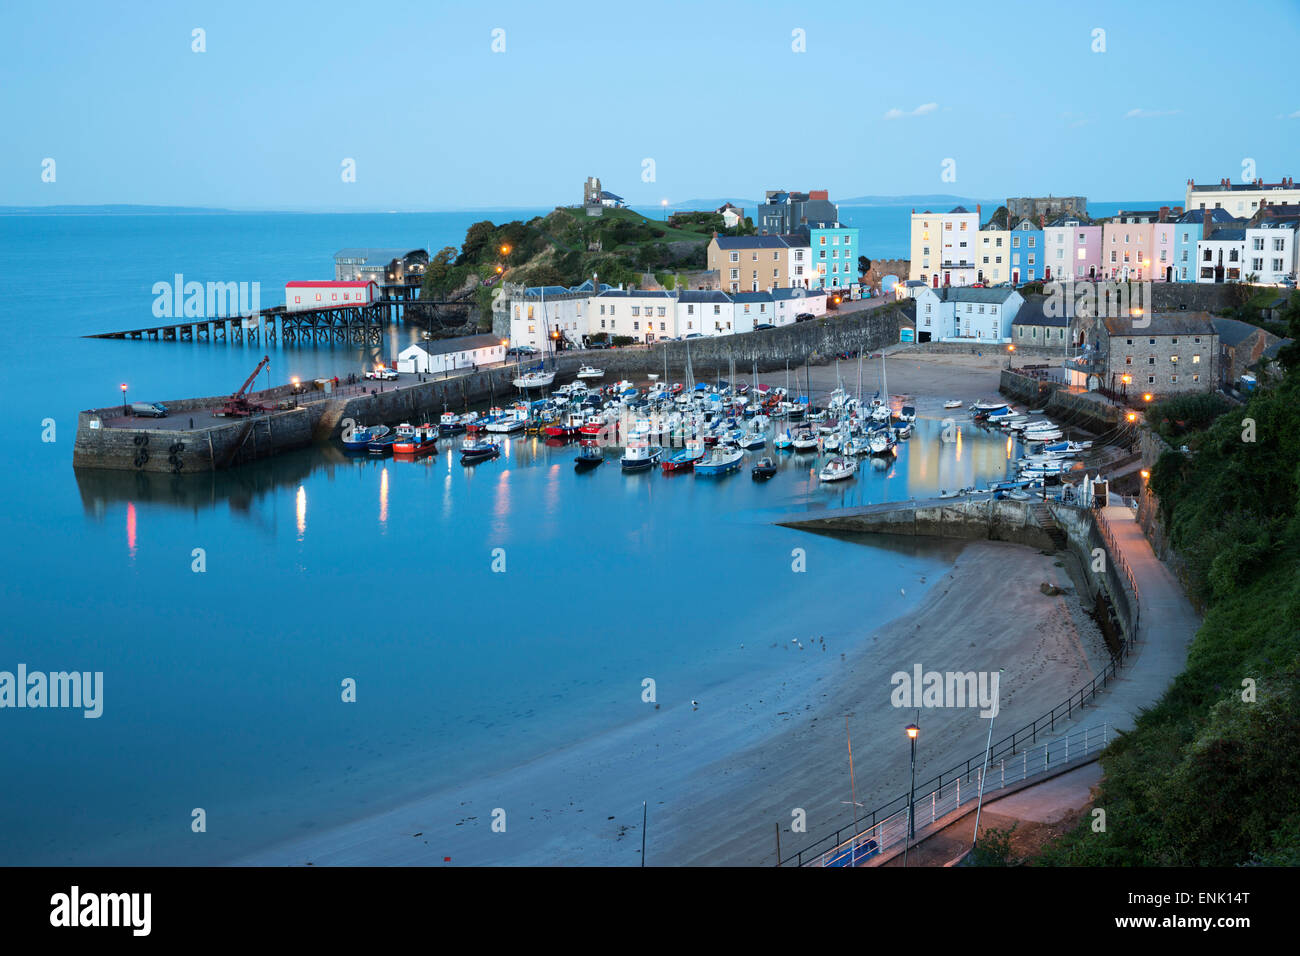 View over harbour and castle, Tenby, Carmarthen Bay, Pembrokeshire, Wales, United Kingdom, Europe - Stock Image